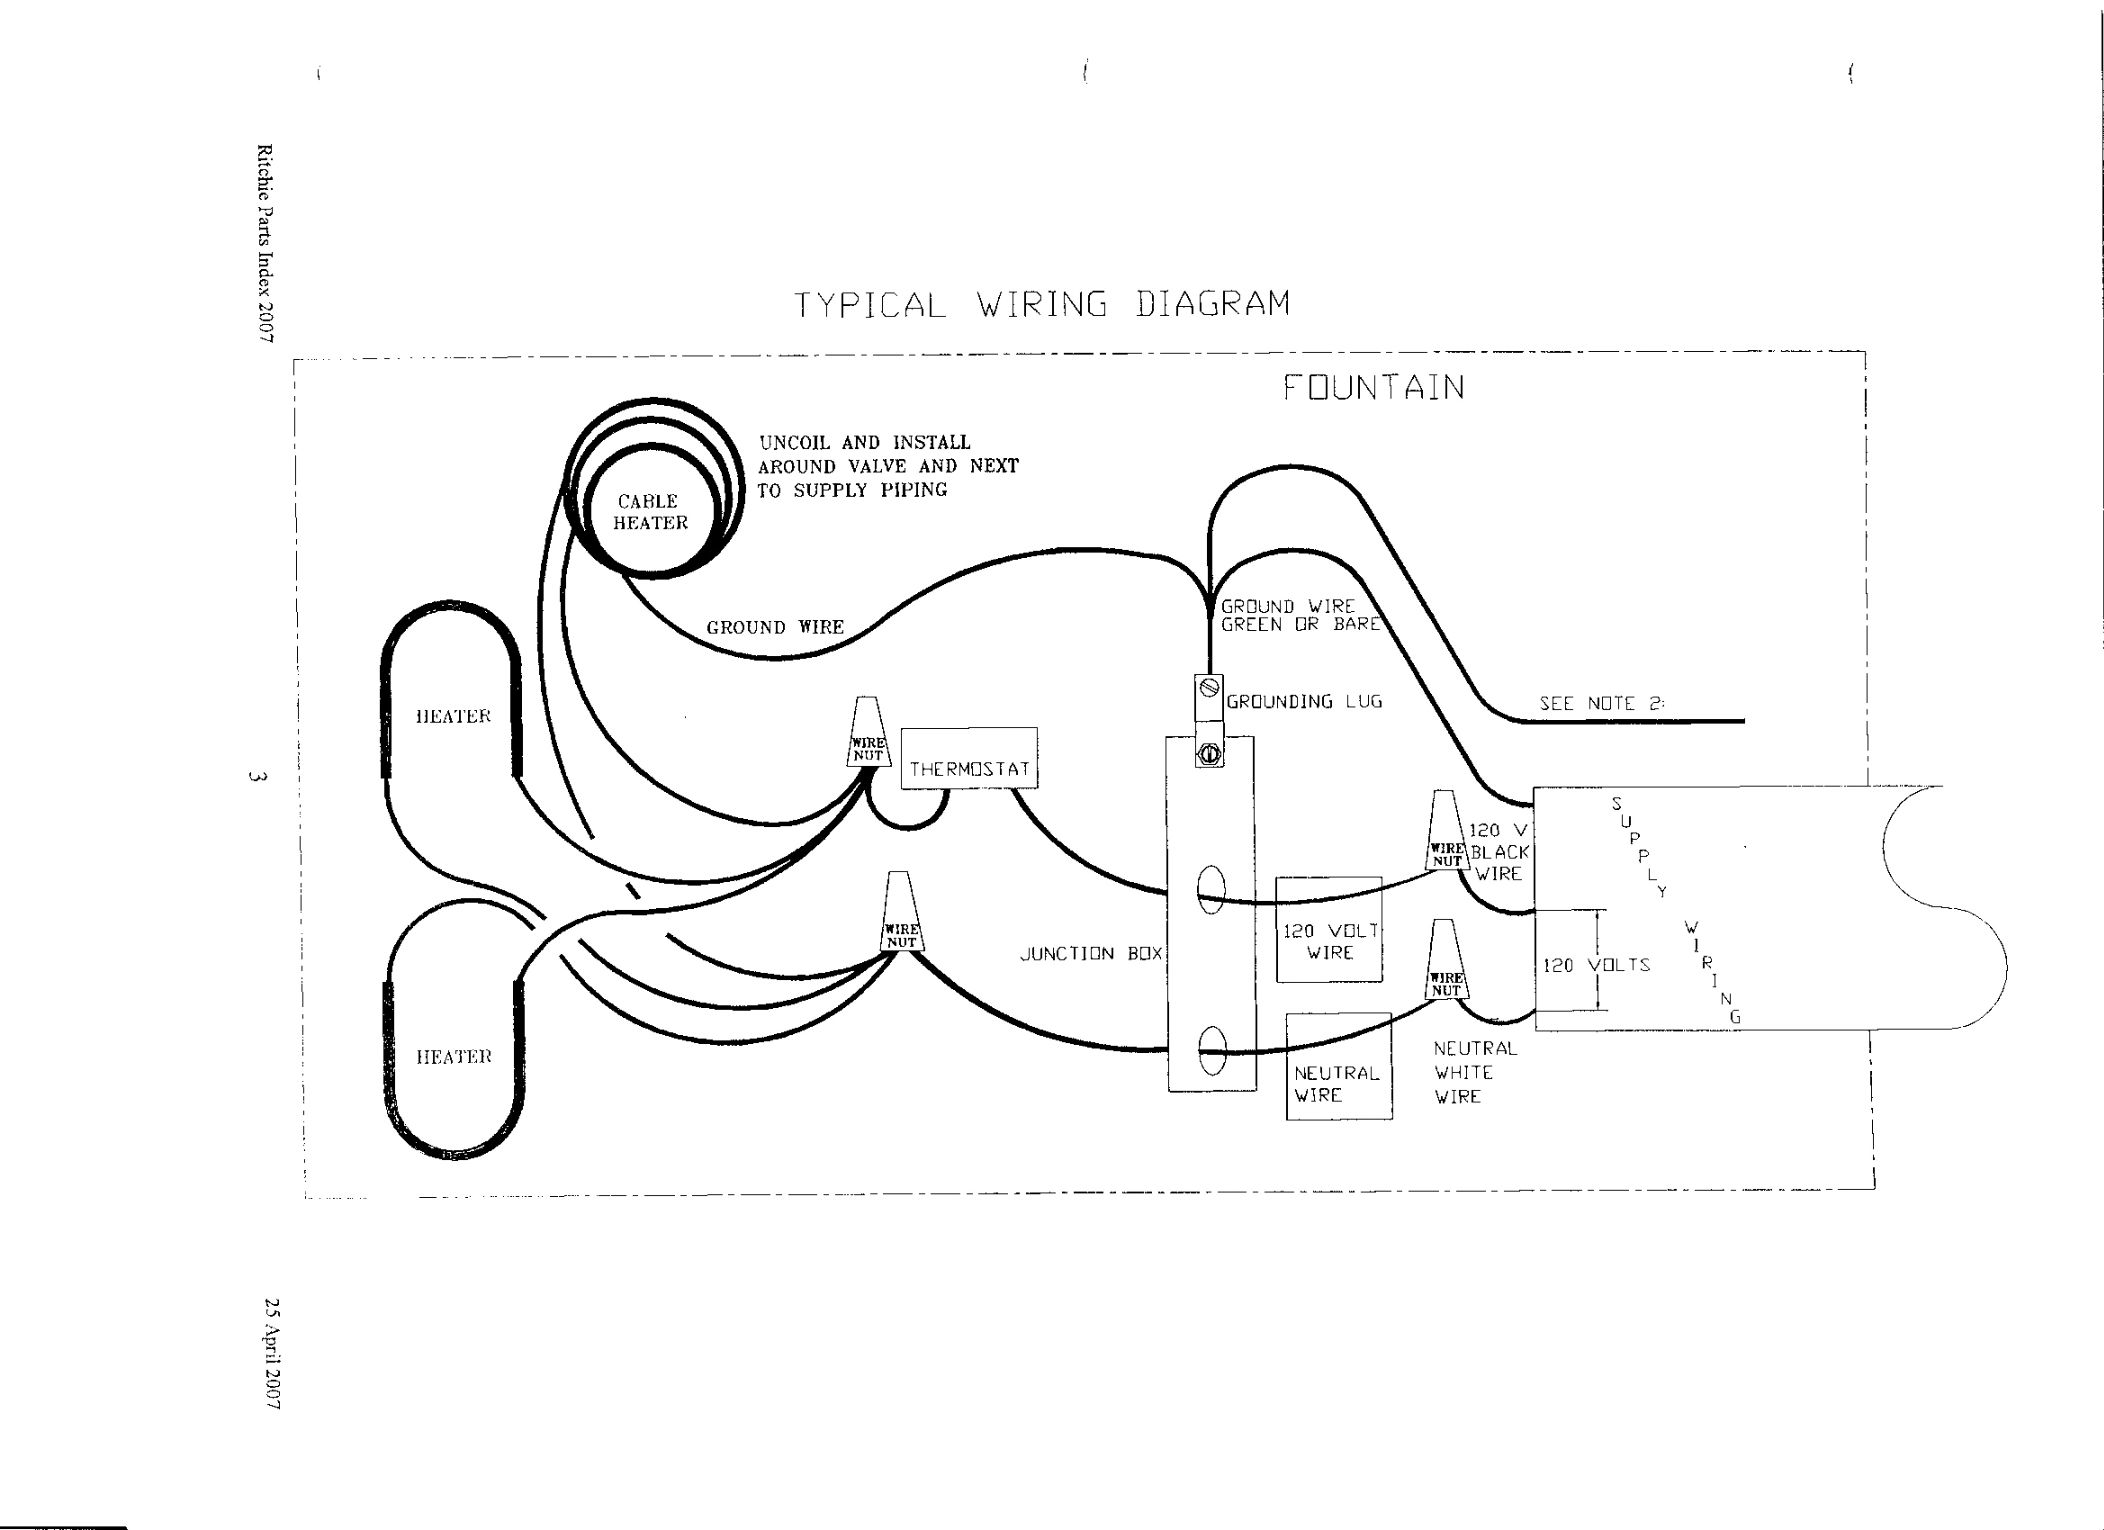 Typical Wiring Diagram : Typical wiring diagram for waterers and fountains